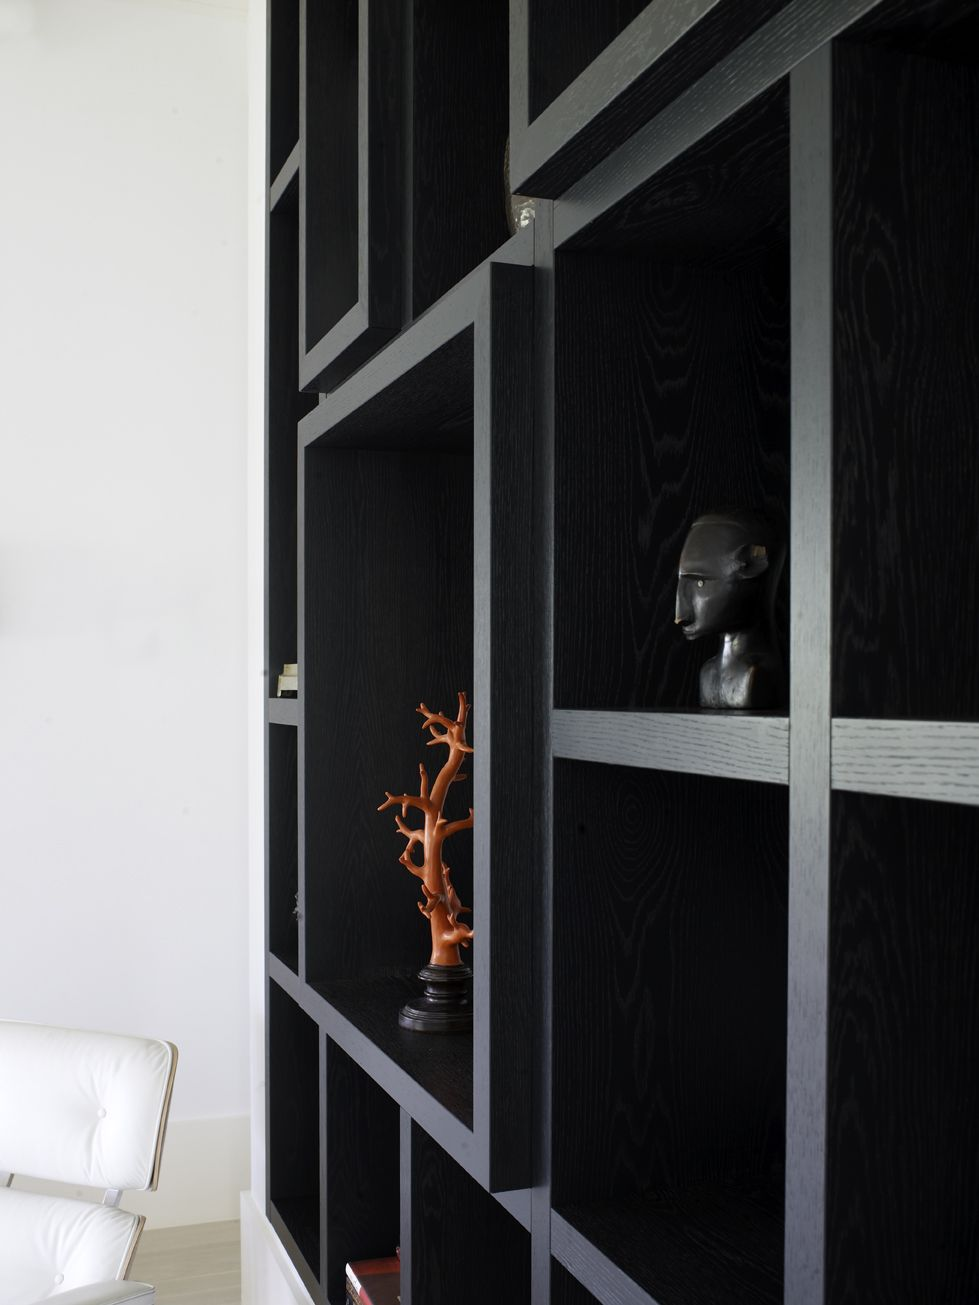 Home window exterior design  piet boon styling by karin meyn  styled black closet  bovet one